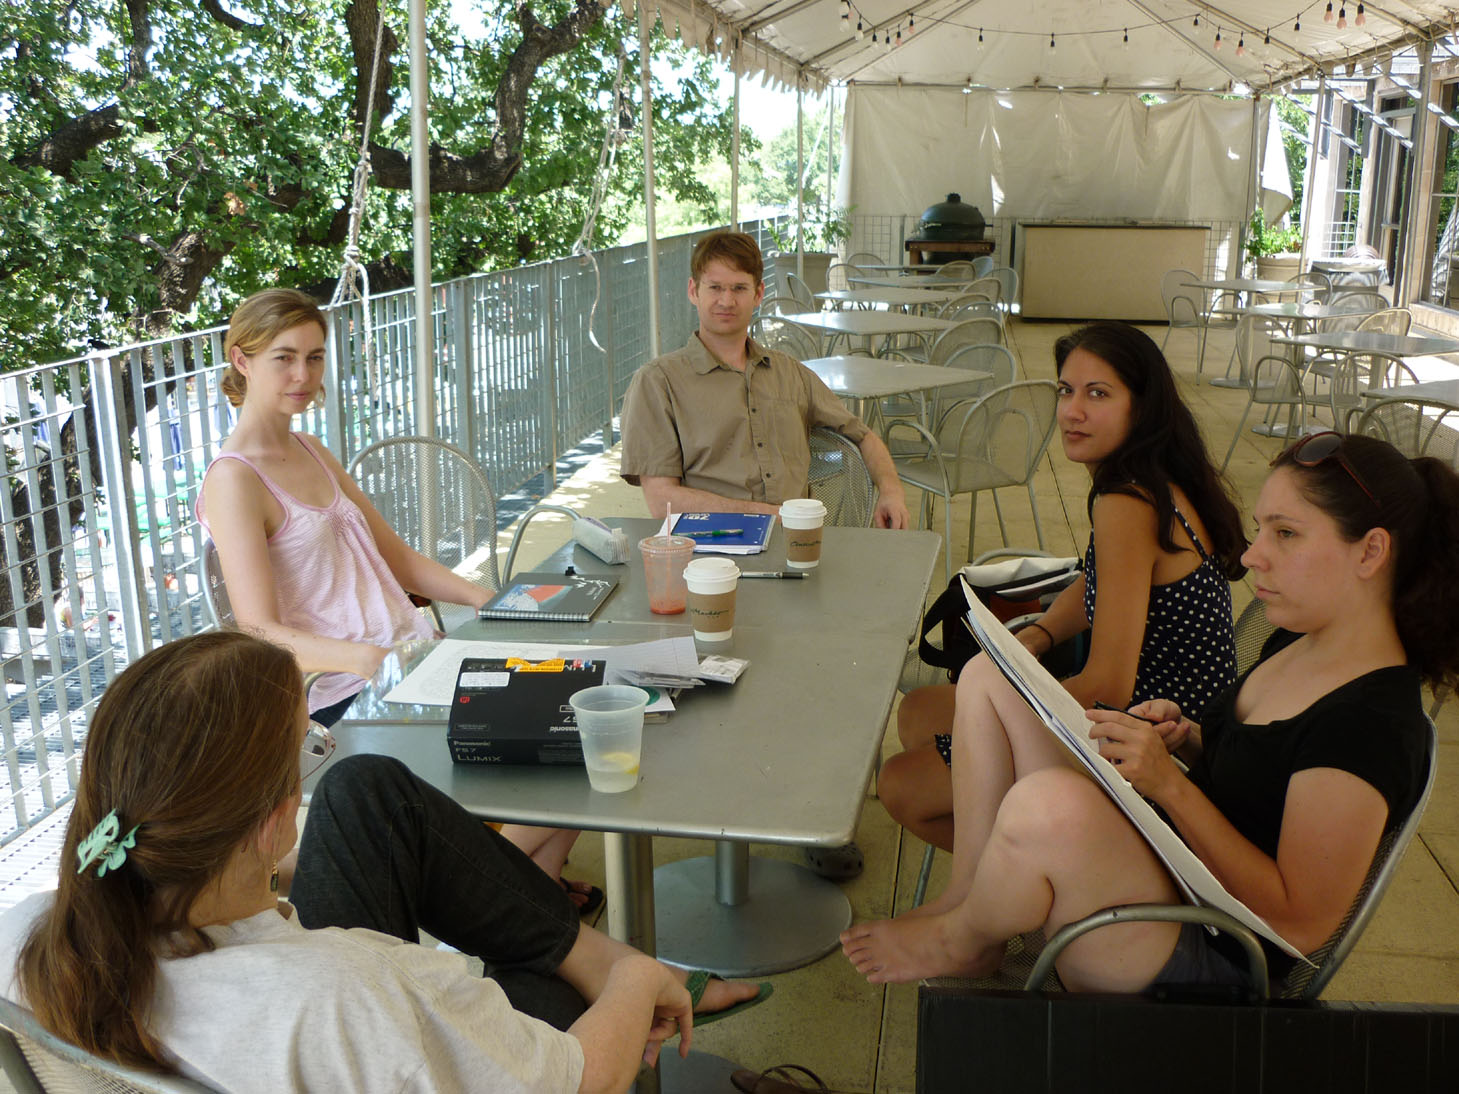 Some of the Inklings of Austin SCBWI during a recent Sunday a.m. huddle: Louise Shelby, Amy Farrier, Torran Anderson, Salima Alikhan and Marsha Riti